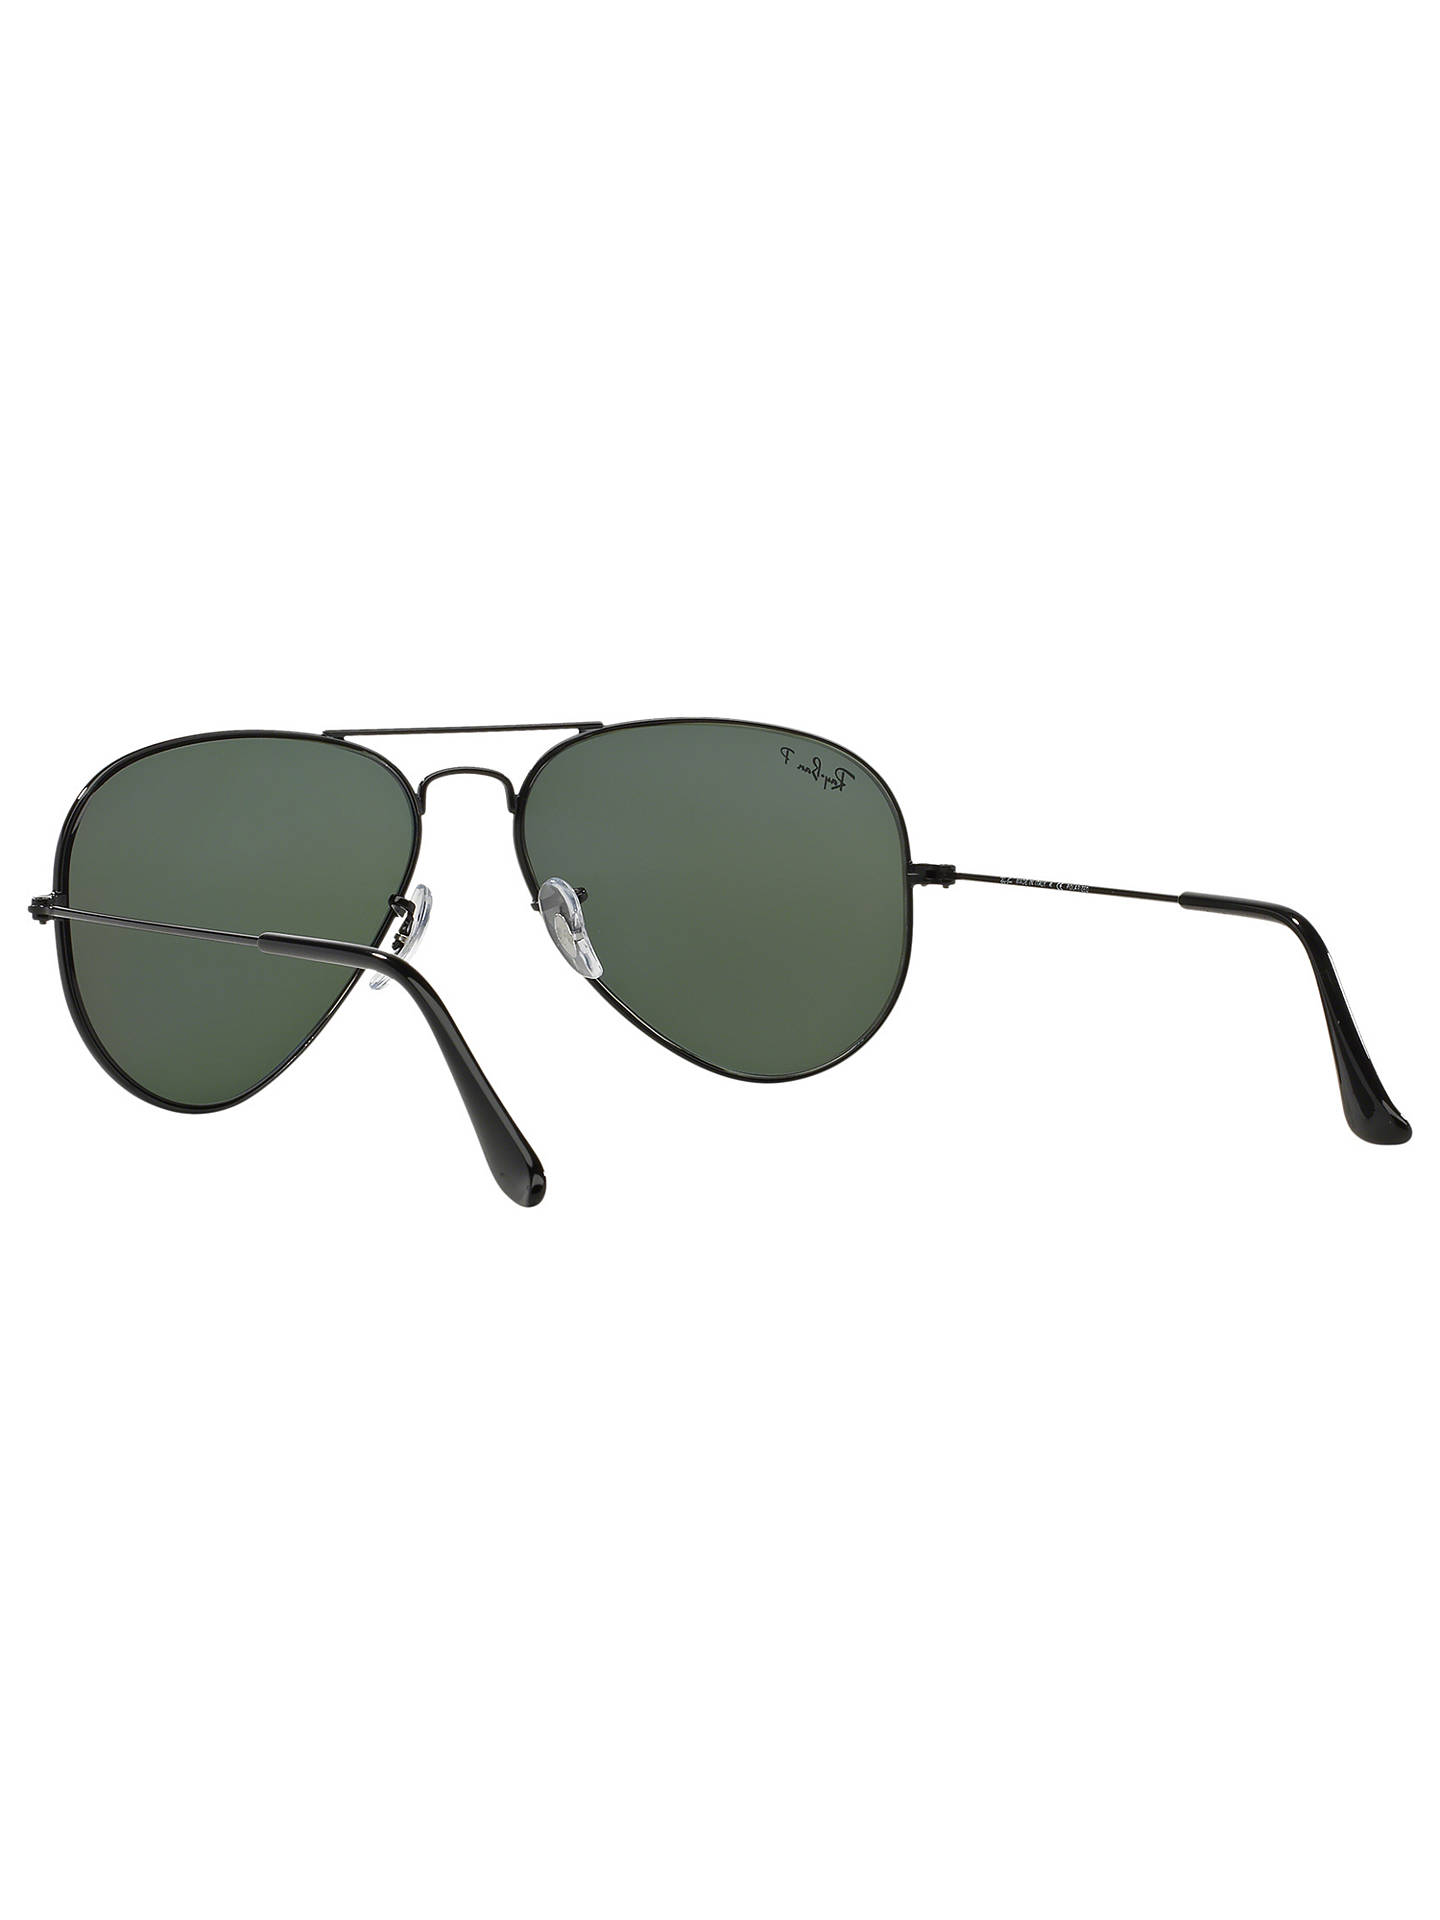 BuyRay-Ban RB3025 Polarised Aviator Sunglasses, Black Online at johnlewis.com